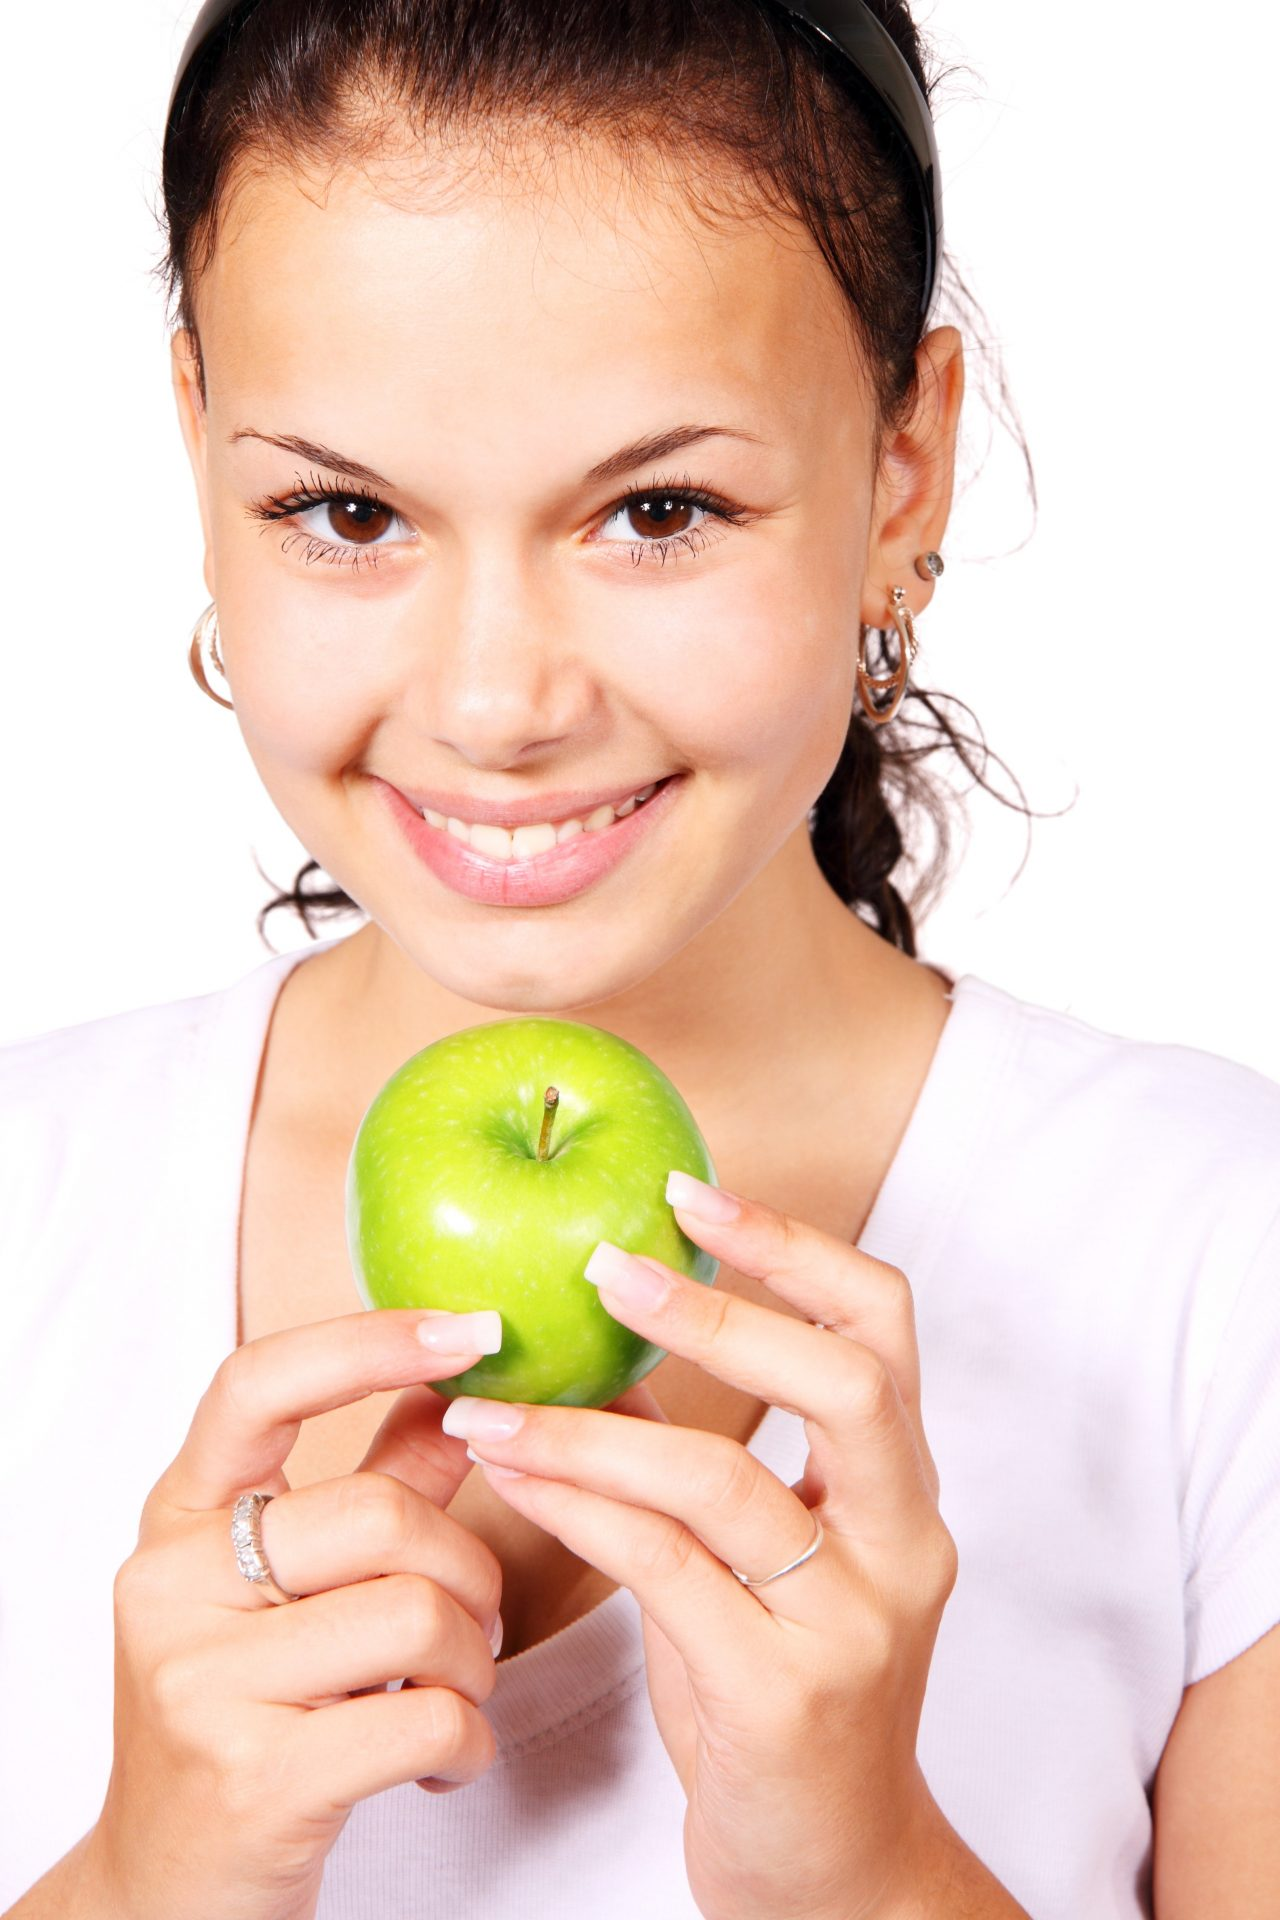 A Healthy Body and a Healthy Smile Go Hand-In-Hand